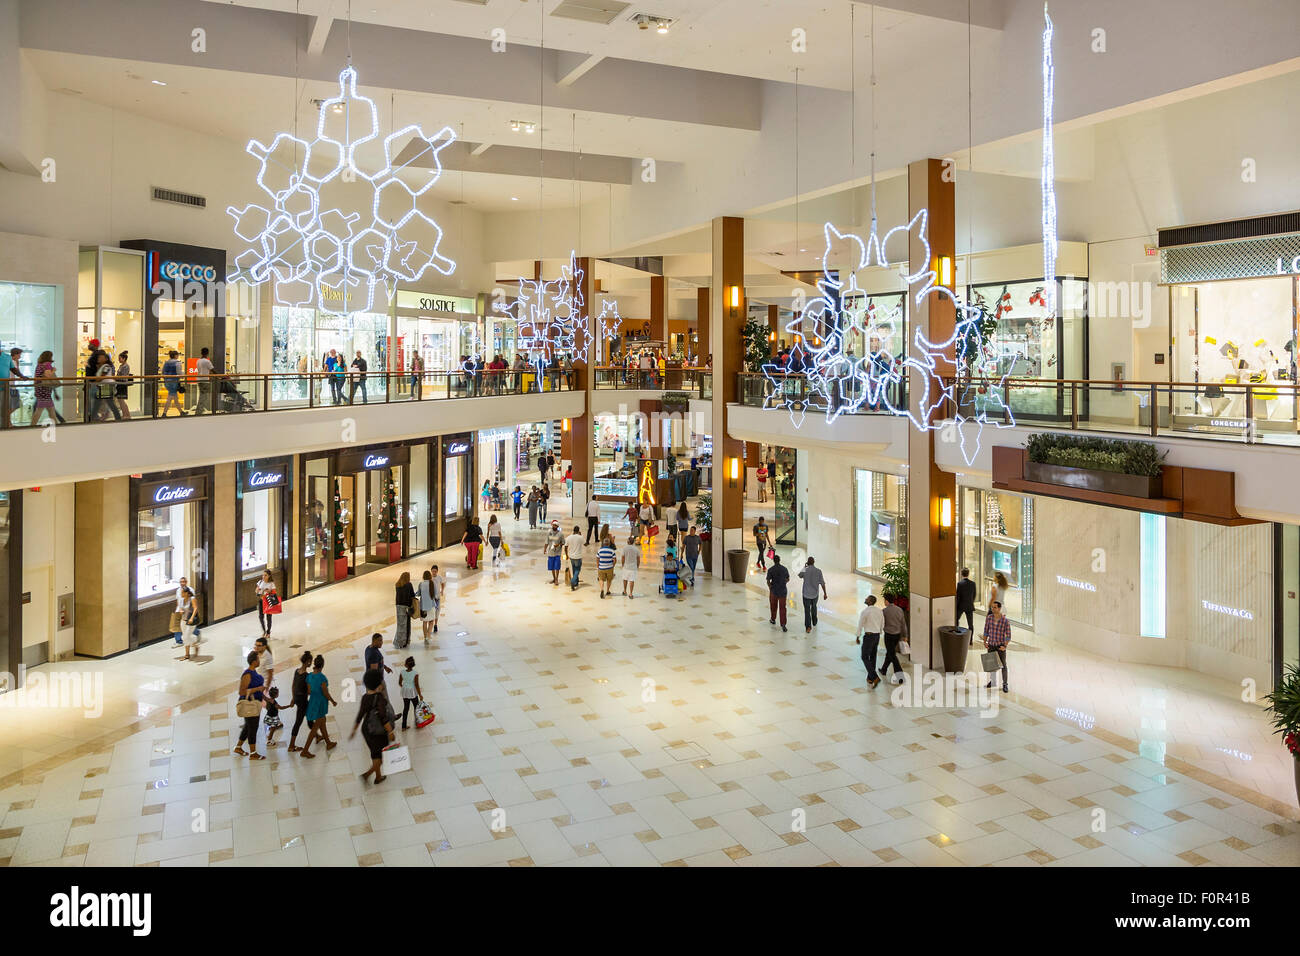 Customer Service Number Aventura Mall: +1 , Biscayne Boulevard Aventura, Fl , United States. Toll Free 1 number. We provide you the customer service number of Aventura Mall with address, webiste, email id and more.